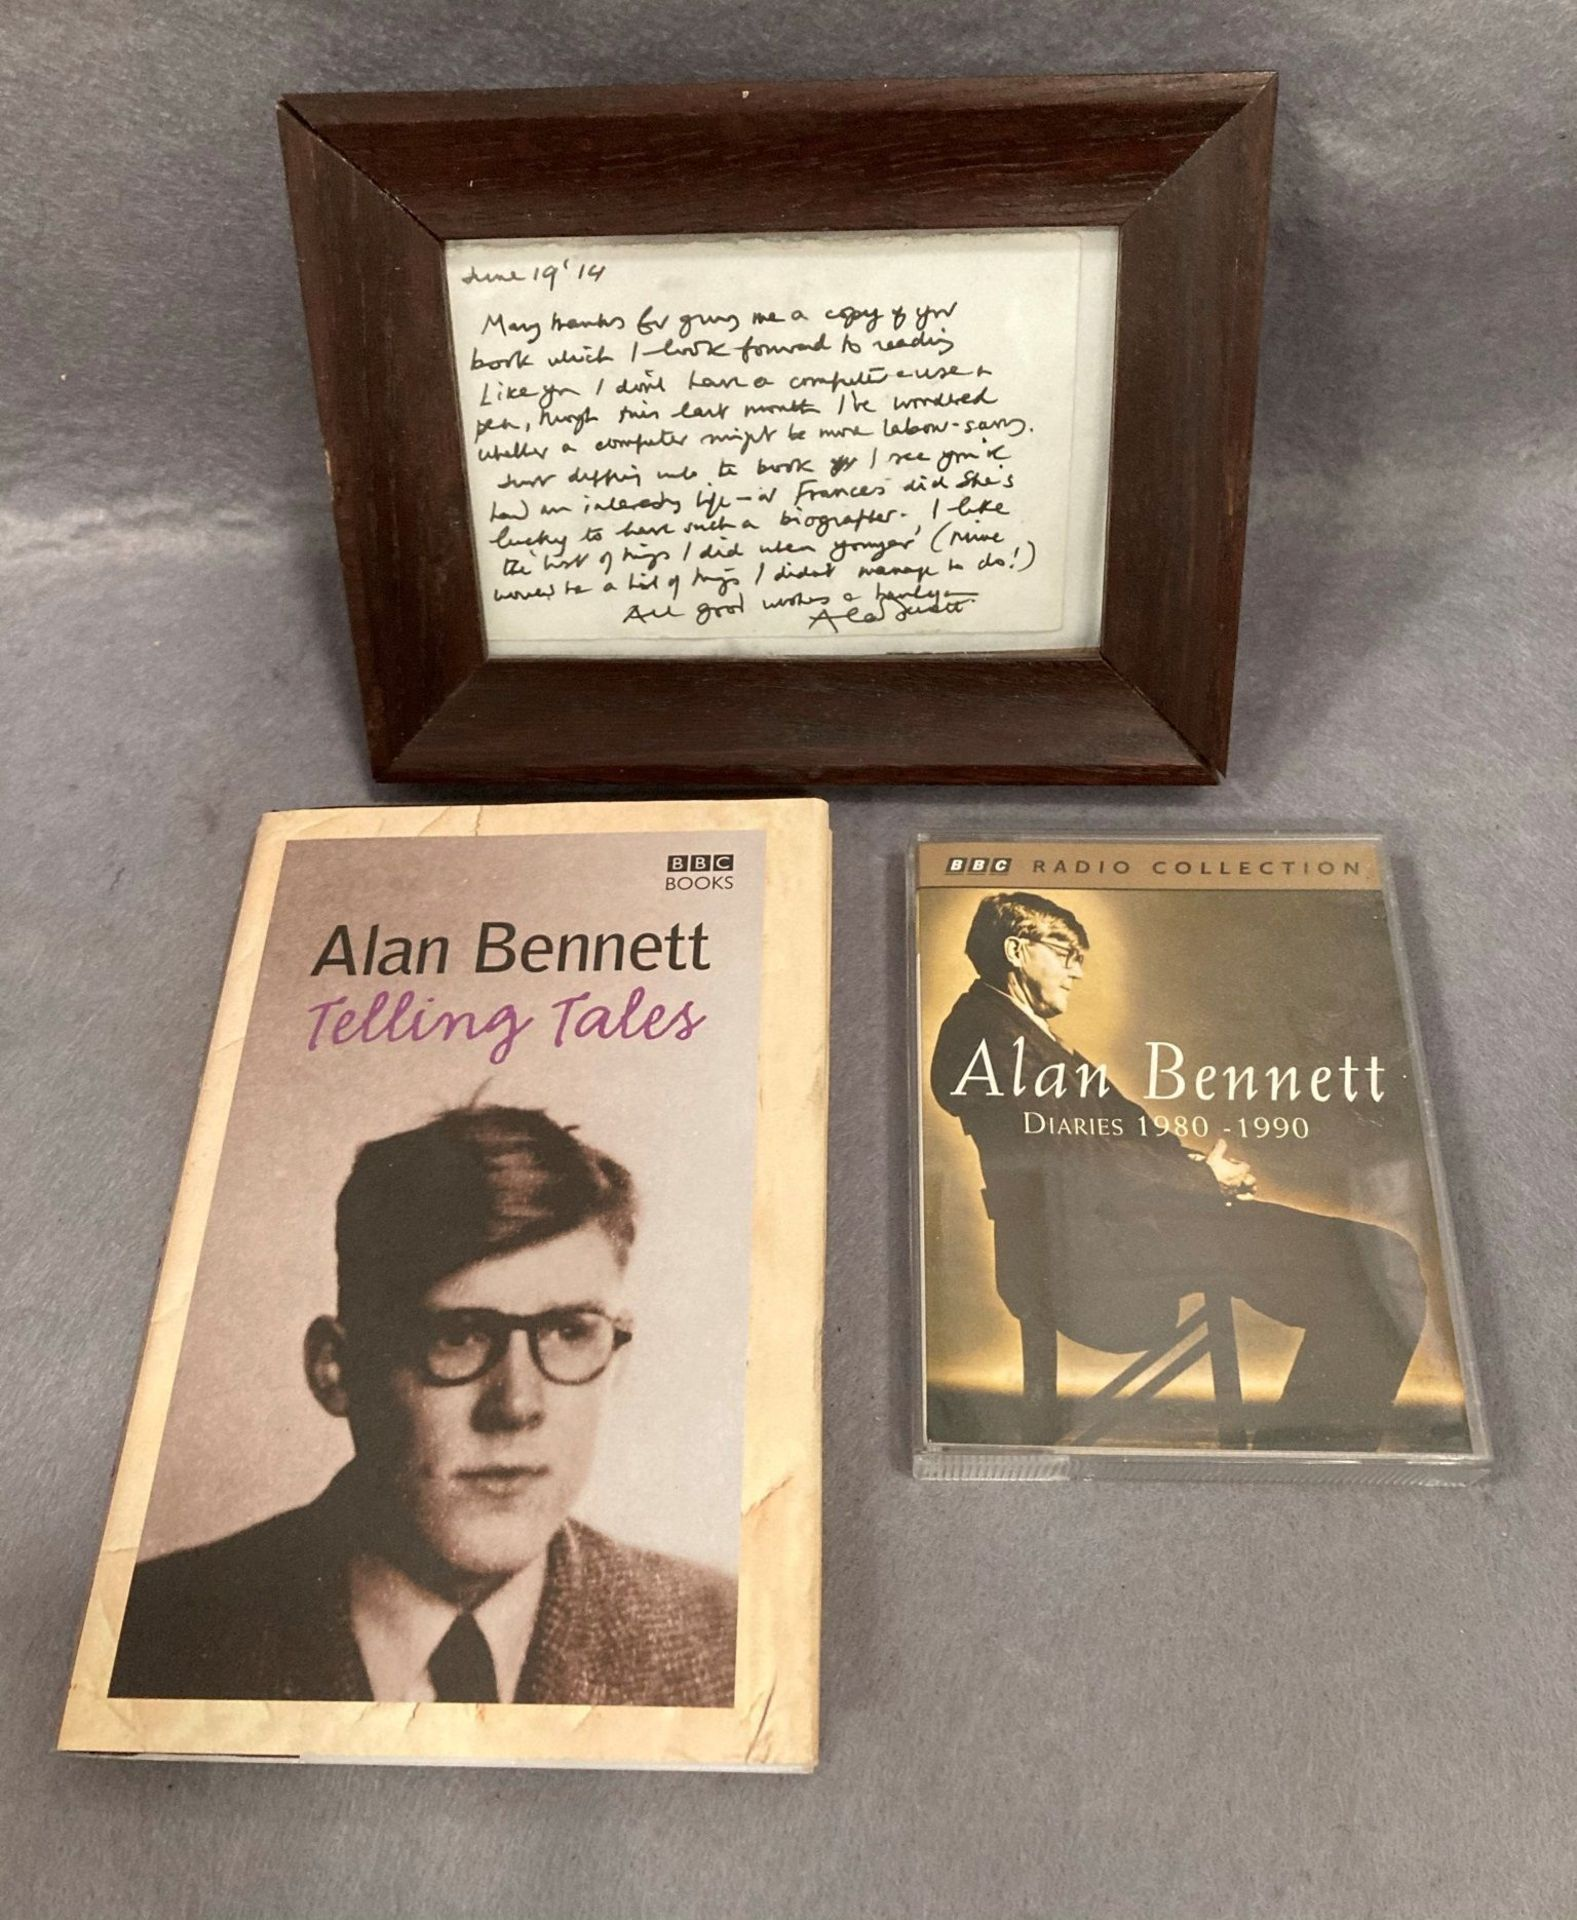 A small hand written note signed Alan Bennett and dated June 19th fourteen in oak frame thanking